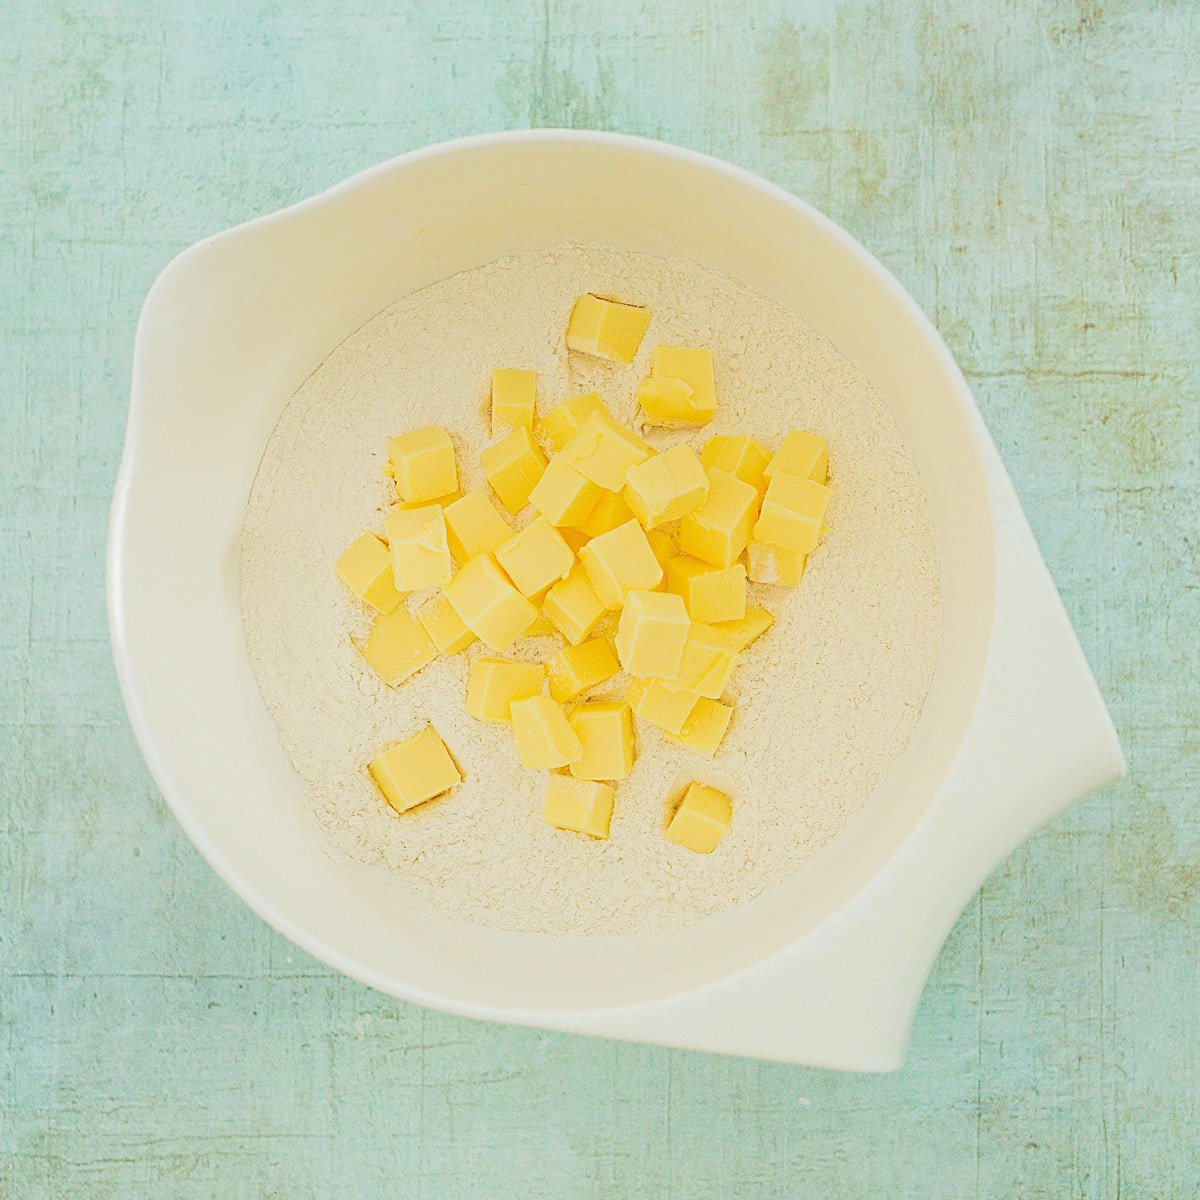 Cubes of butter on top of flour in a white bowl